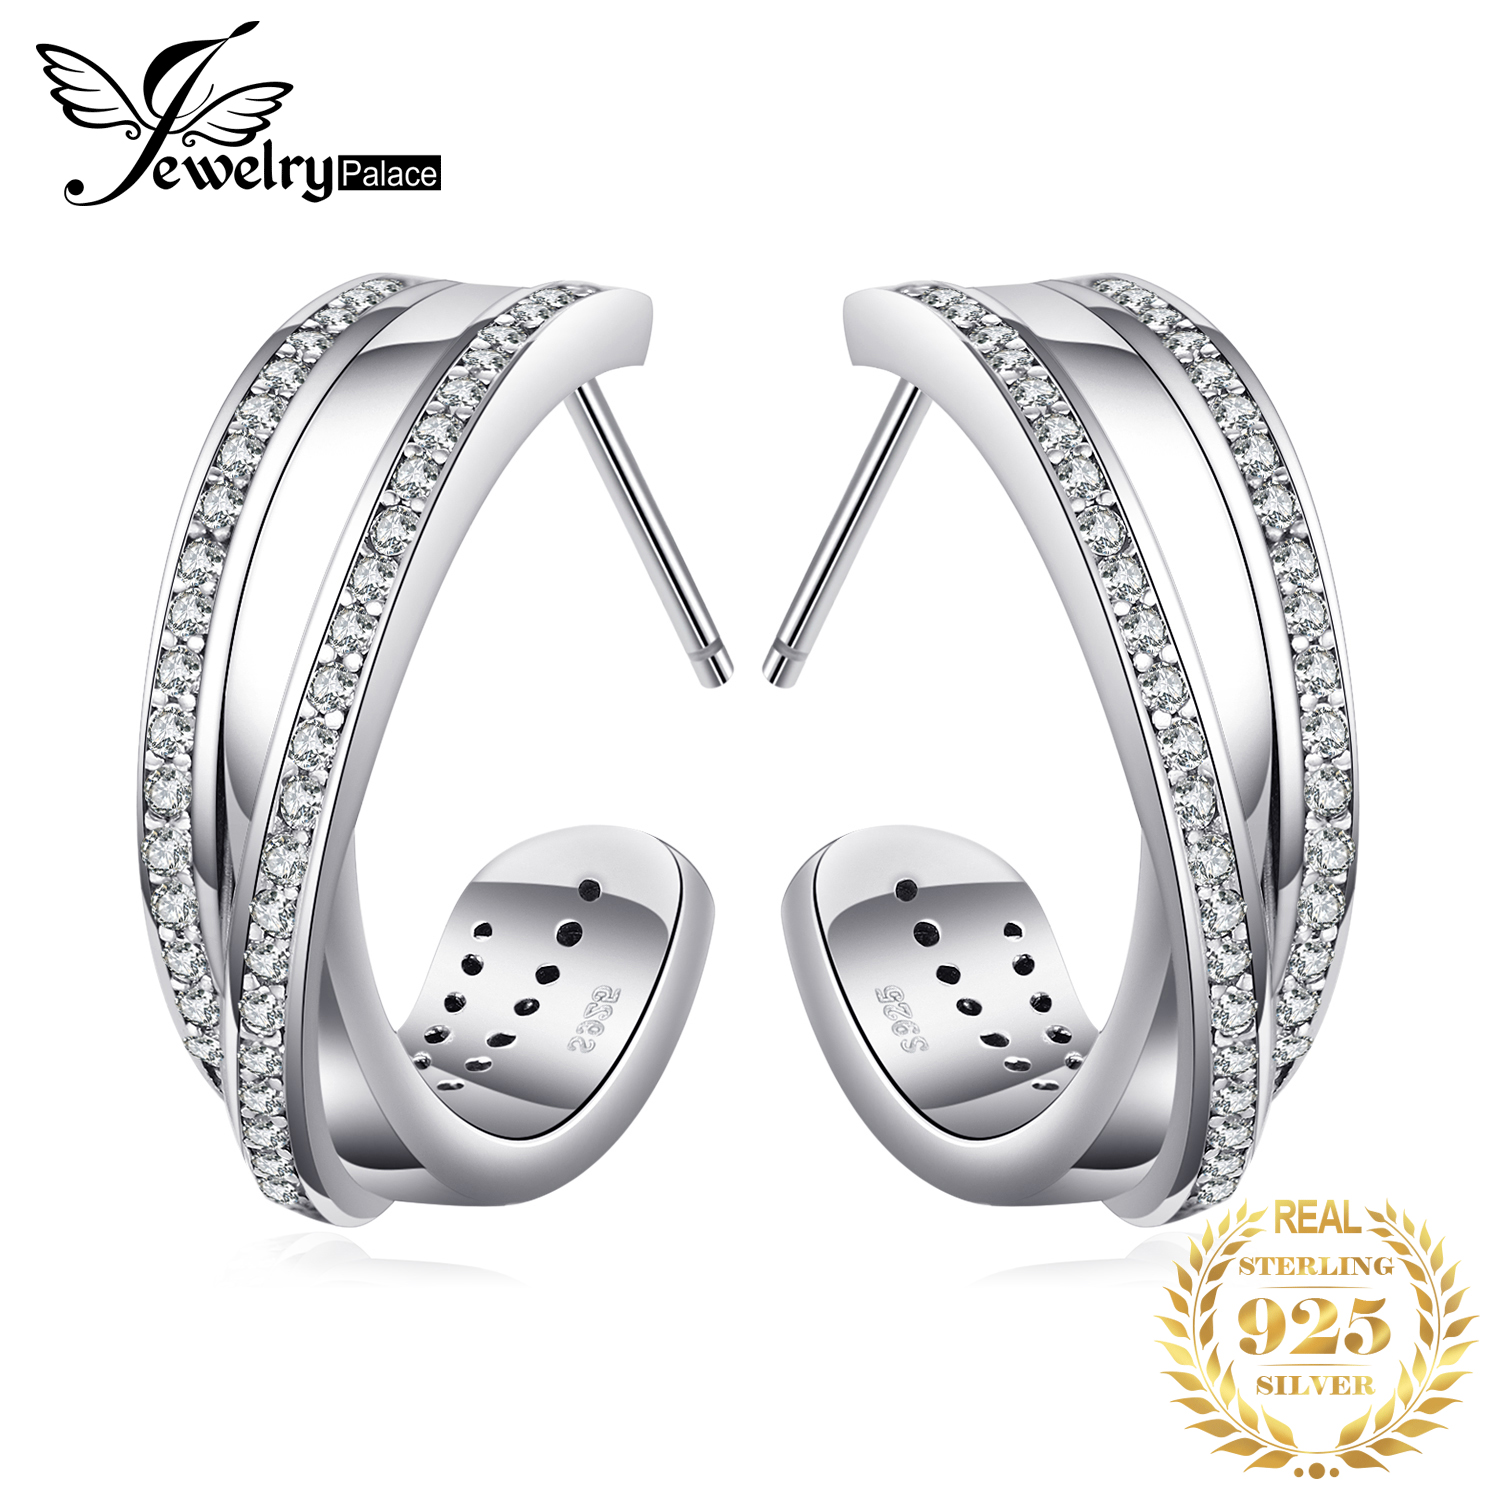 Jewelrypalace 925 Sterling Silver Eternity Intervened Lines Open Wind Jewelry For Women On Sale Stud Earrings